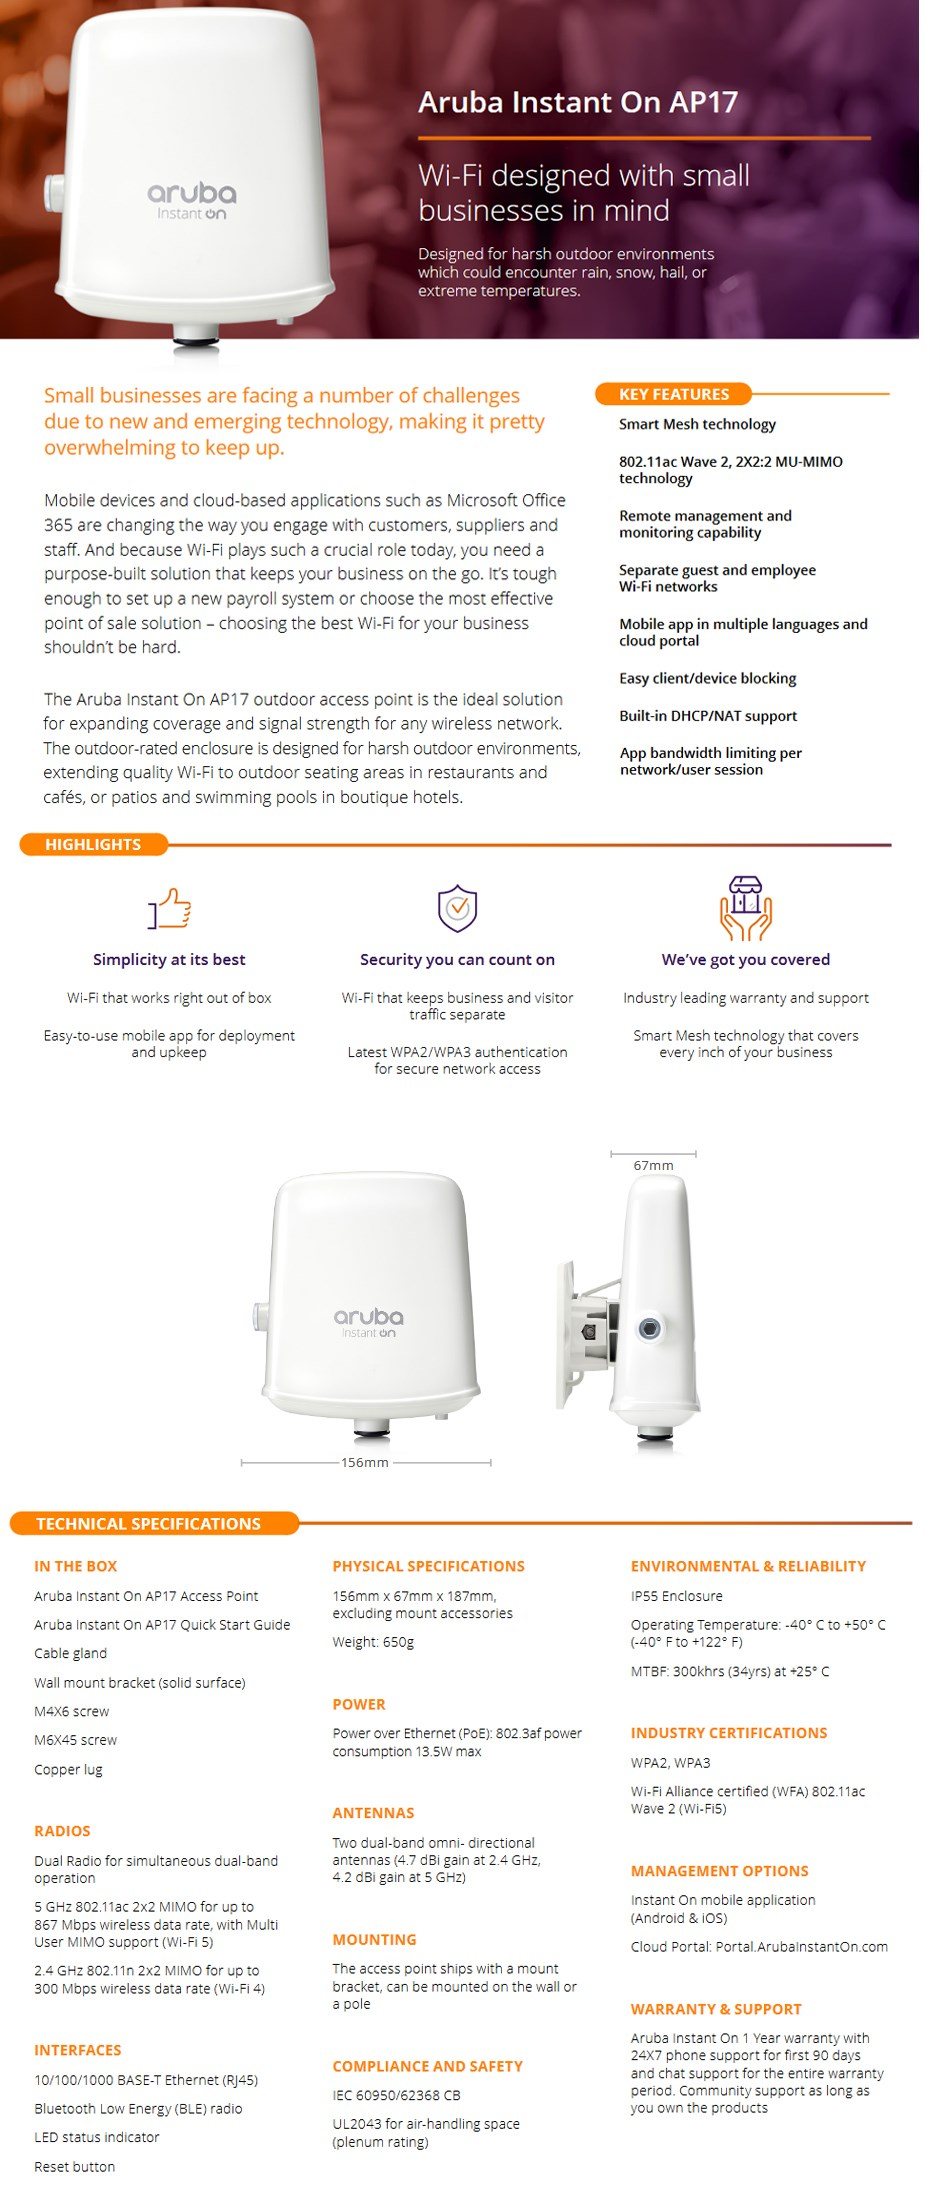 HPE Aruba Instant On AP17 802.11ac 2x2 MIMO Wave 2 Outdoor Access Point	 - Overview 1